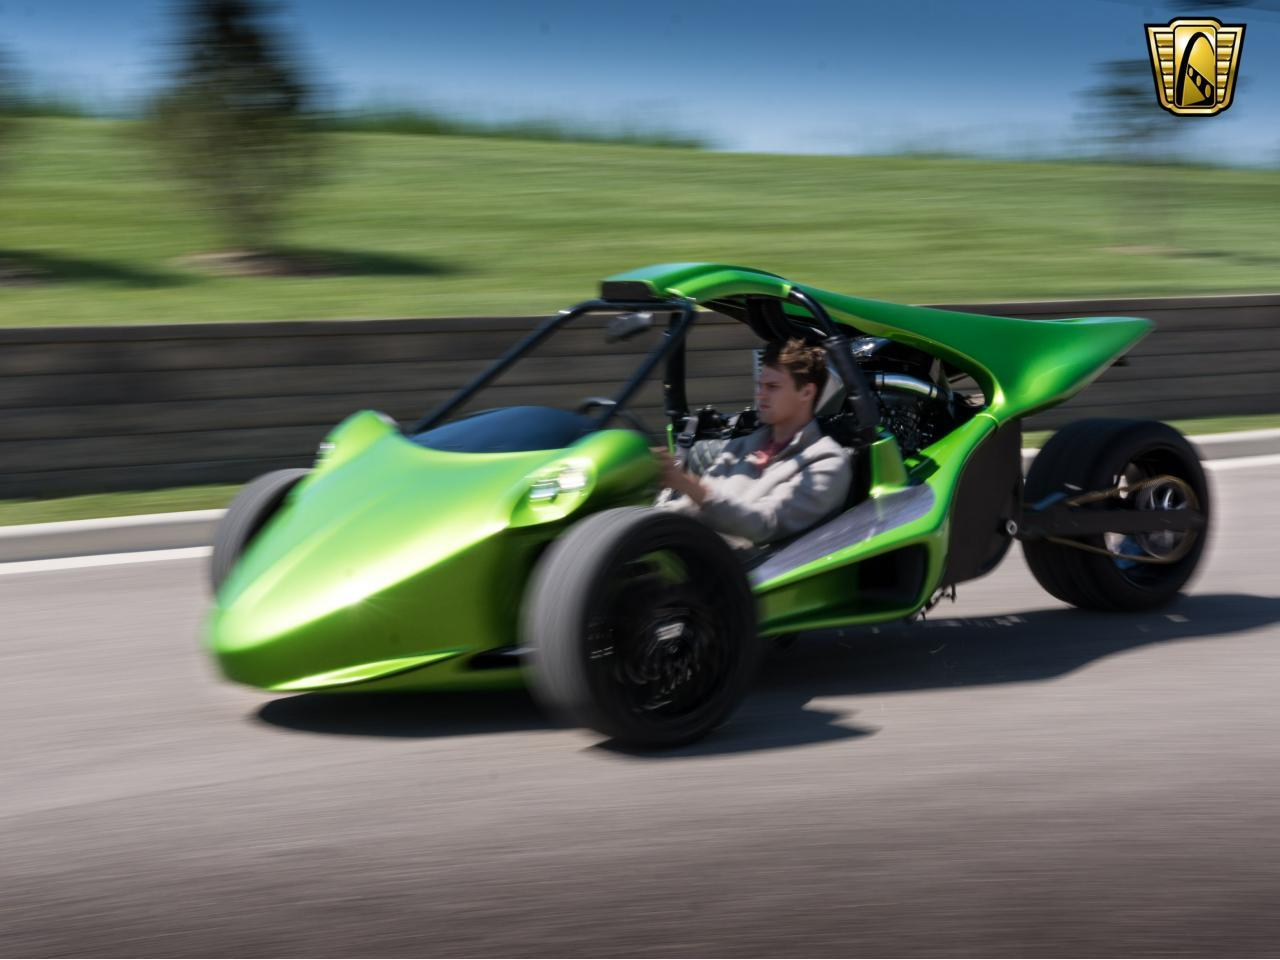 Large Picture of 2008 T-Rex Replica located in Wisconsin - $44,595.00 Offered by Gateway Classic Cars - Milwaukee - L7NA